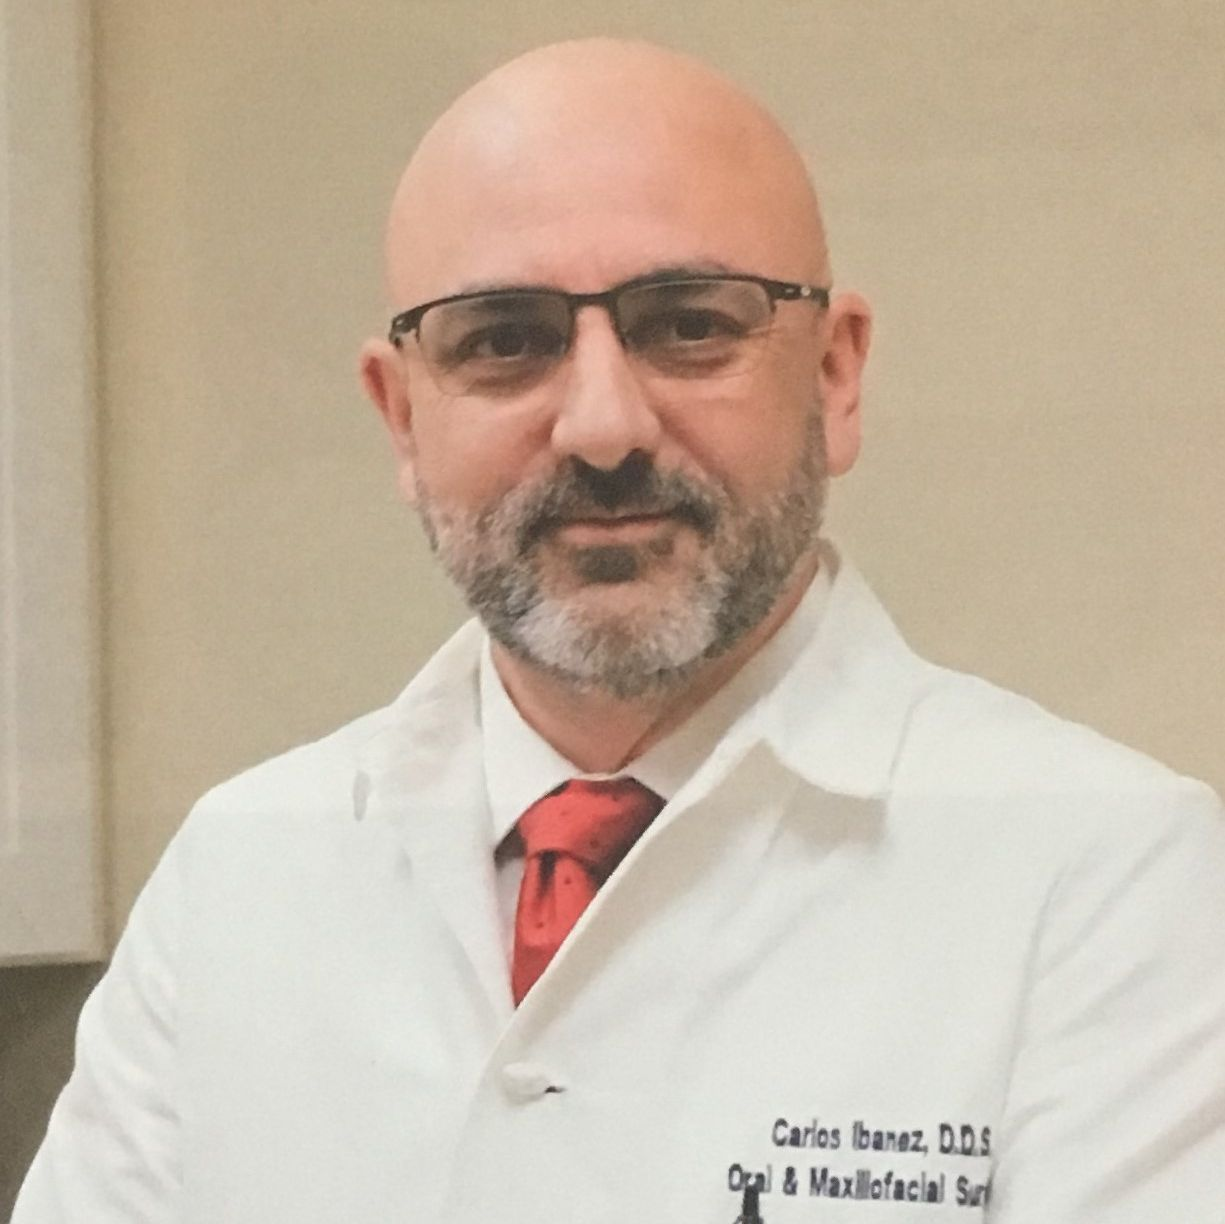 Carlos Ibanez, Oral and Maxillofacial Surgeon